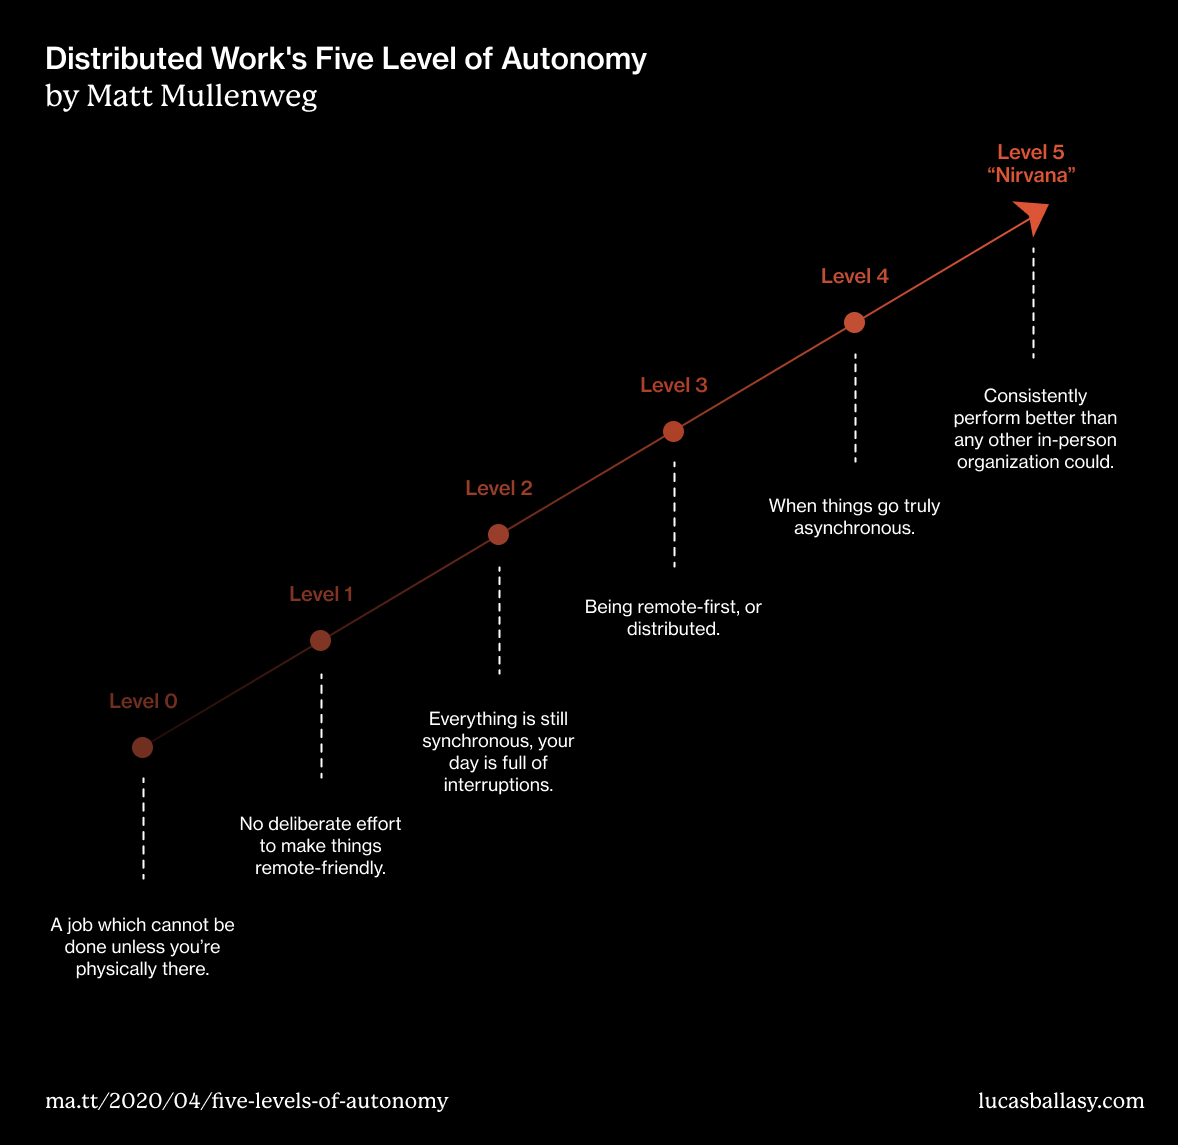 Matt Mullenweg Distributed Work's Five Level of Autonomy